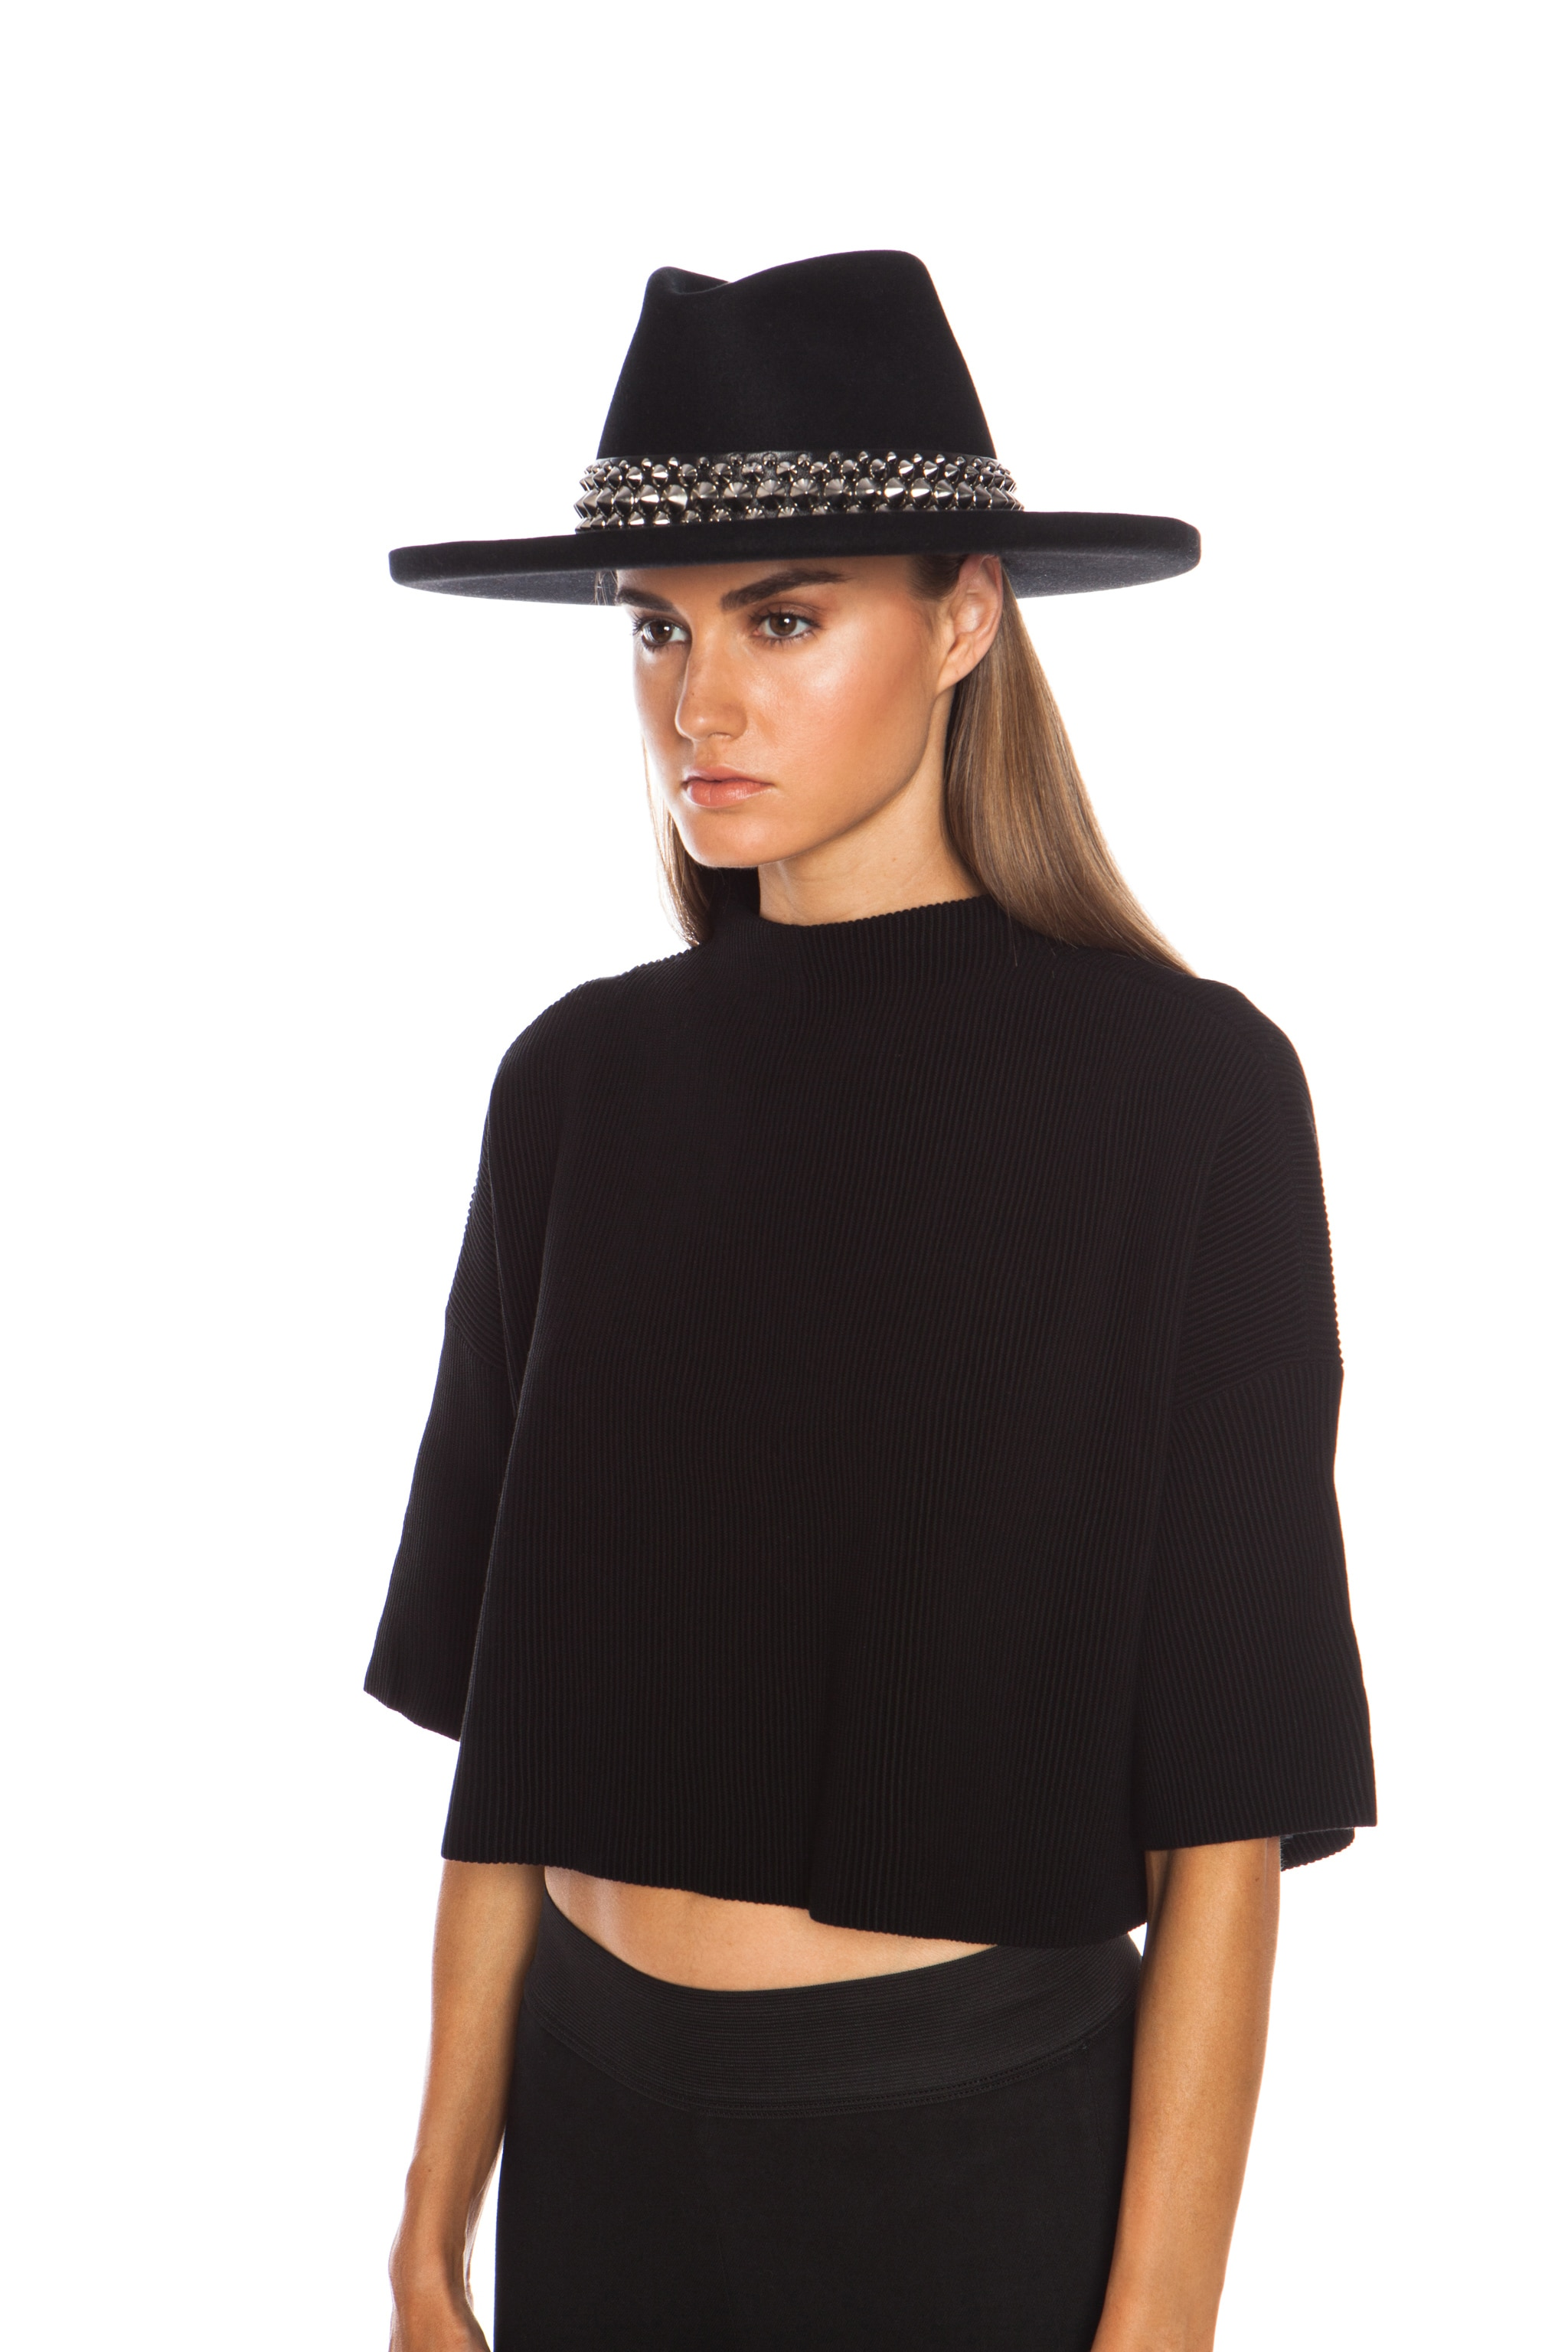 Image 5 of Gladys Tamez Millinery The Johnny Hat with Studded Band in Black